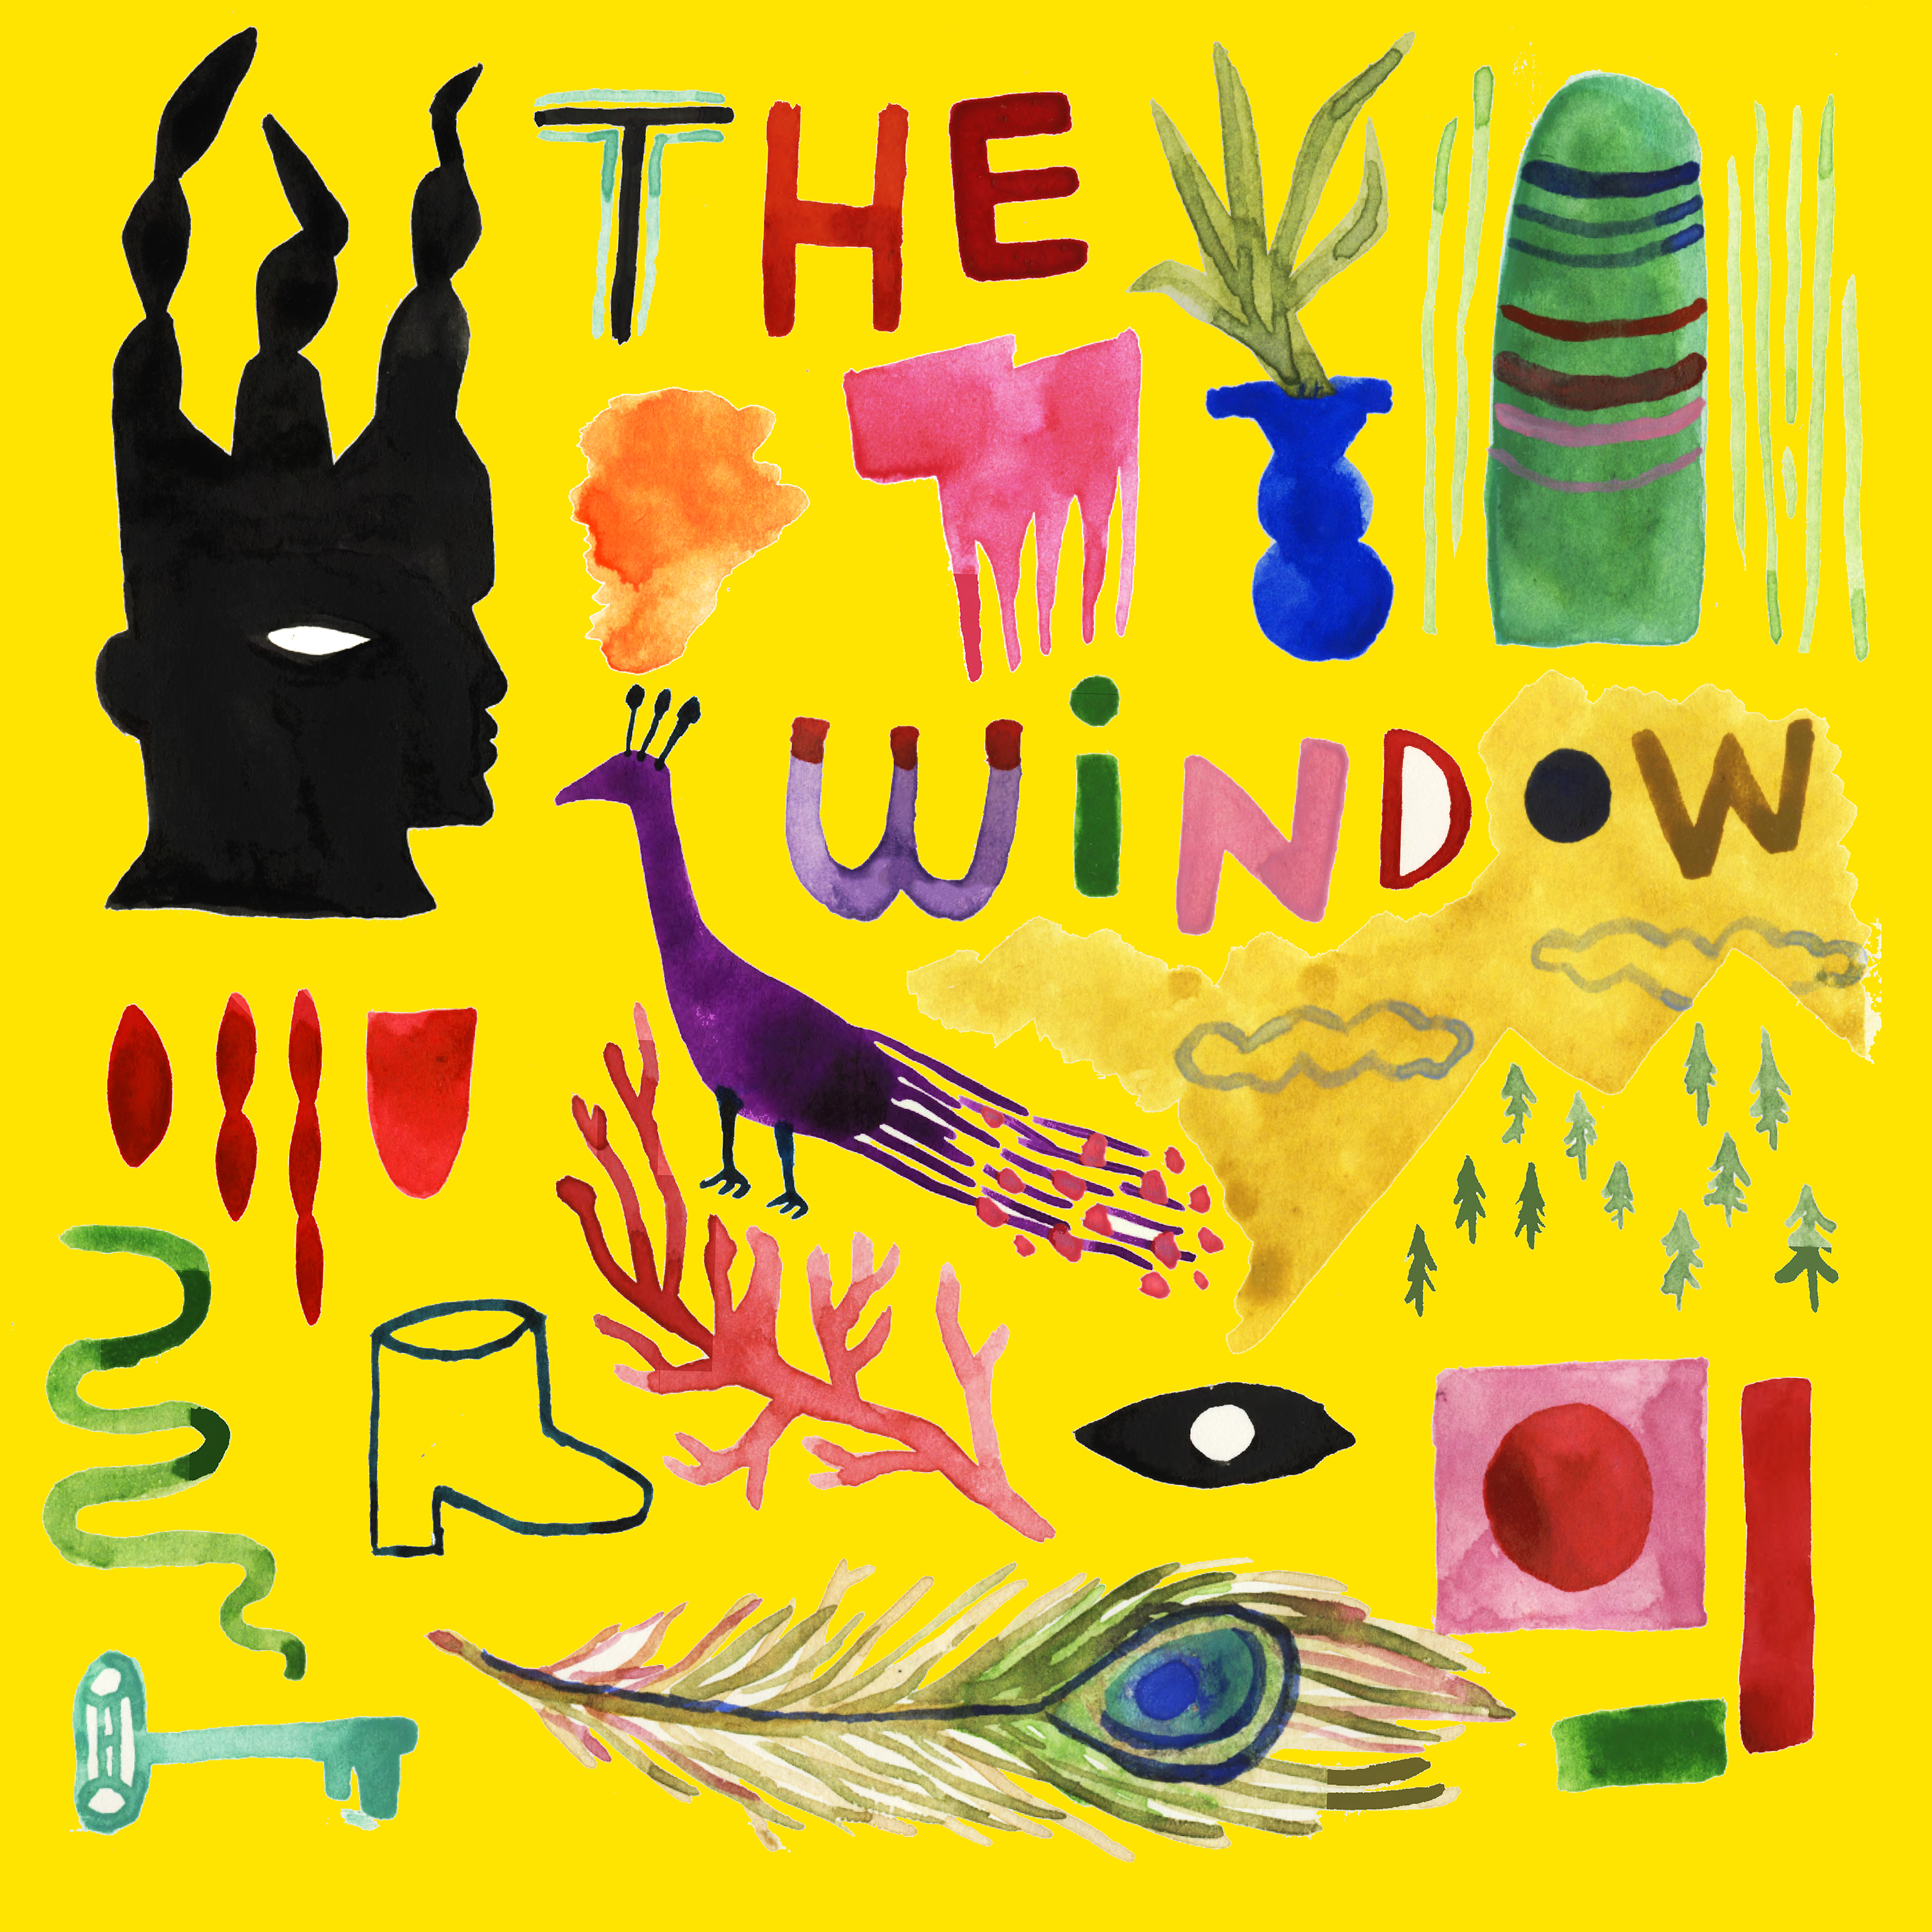 Cecile McLorin Salvant_The Window cover 3000x3000 rgb